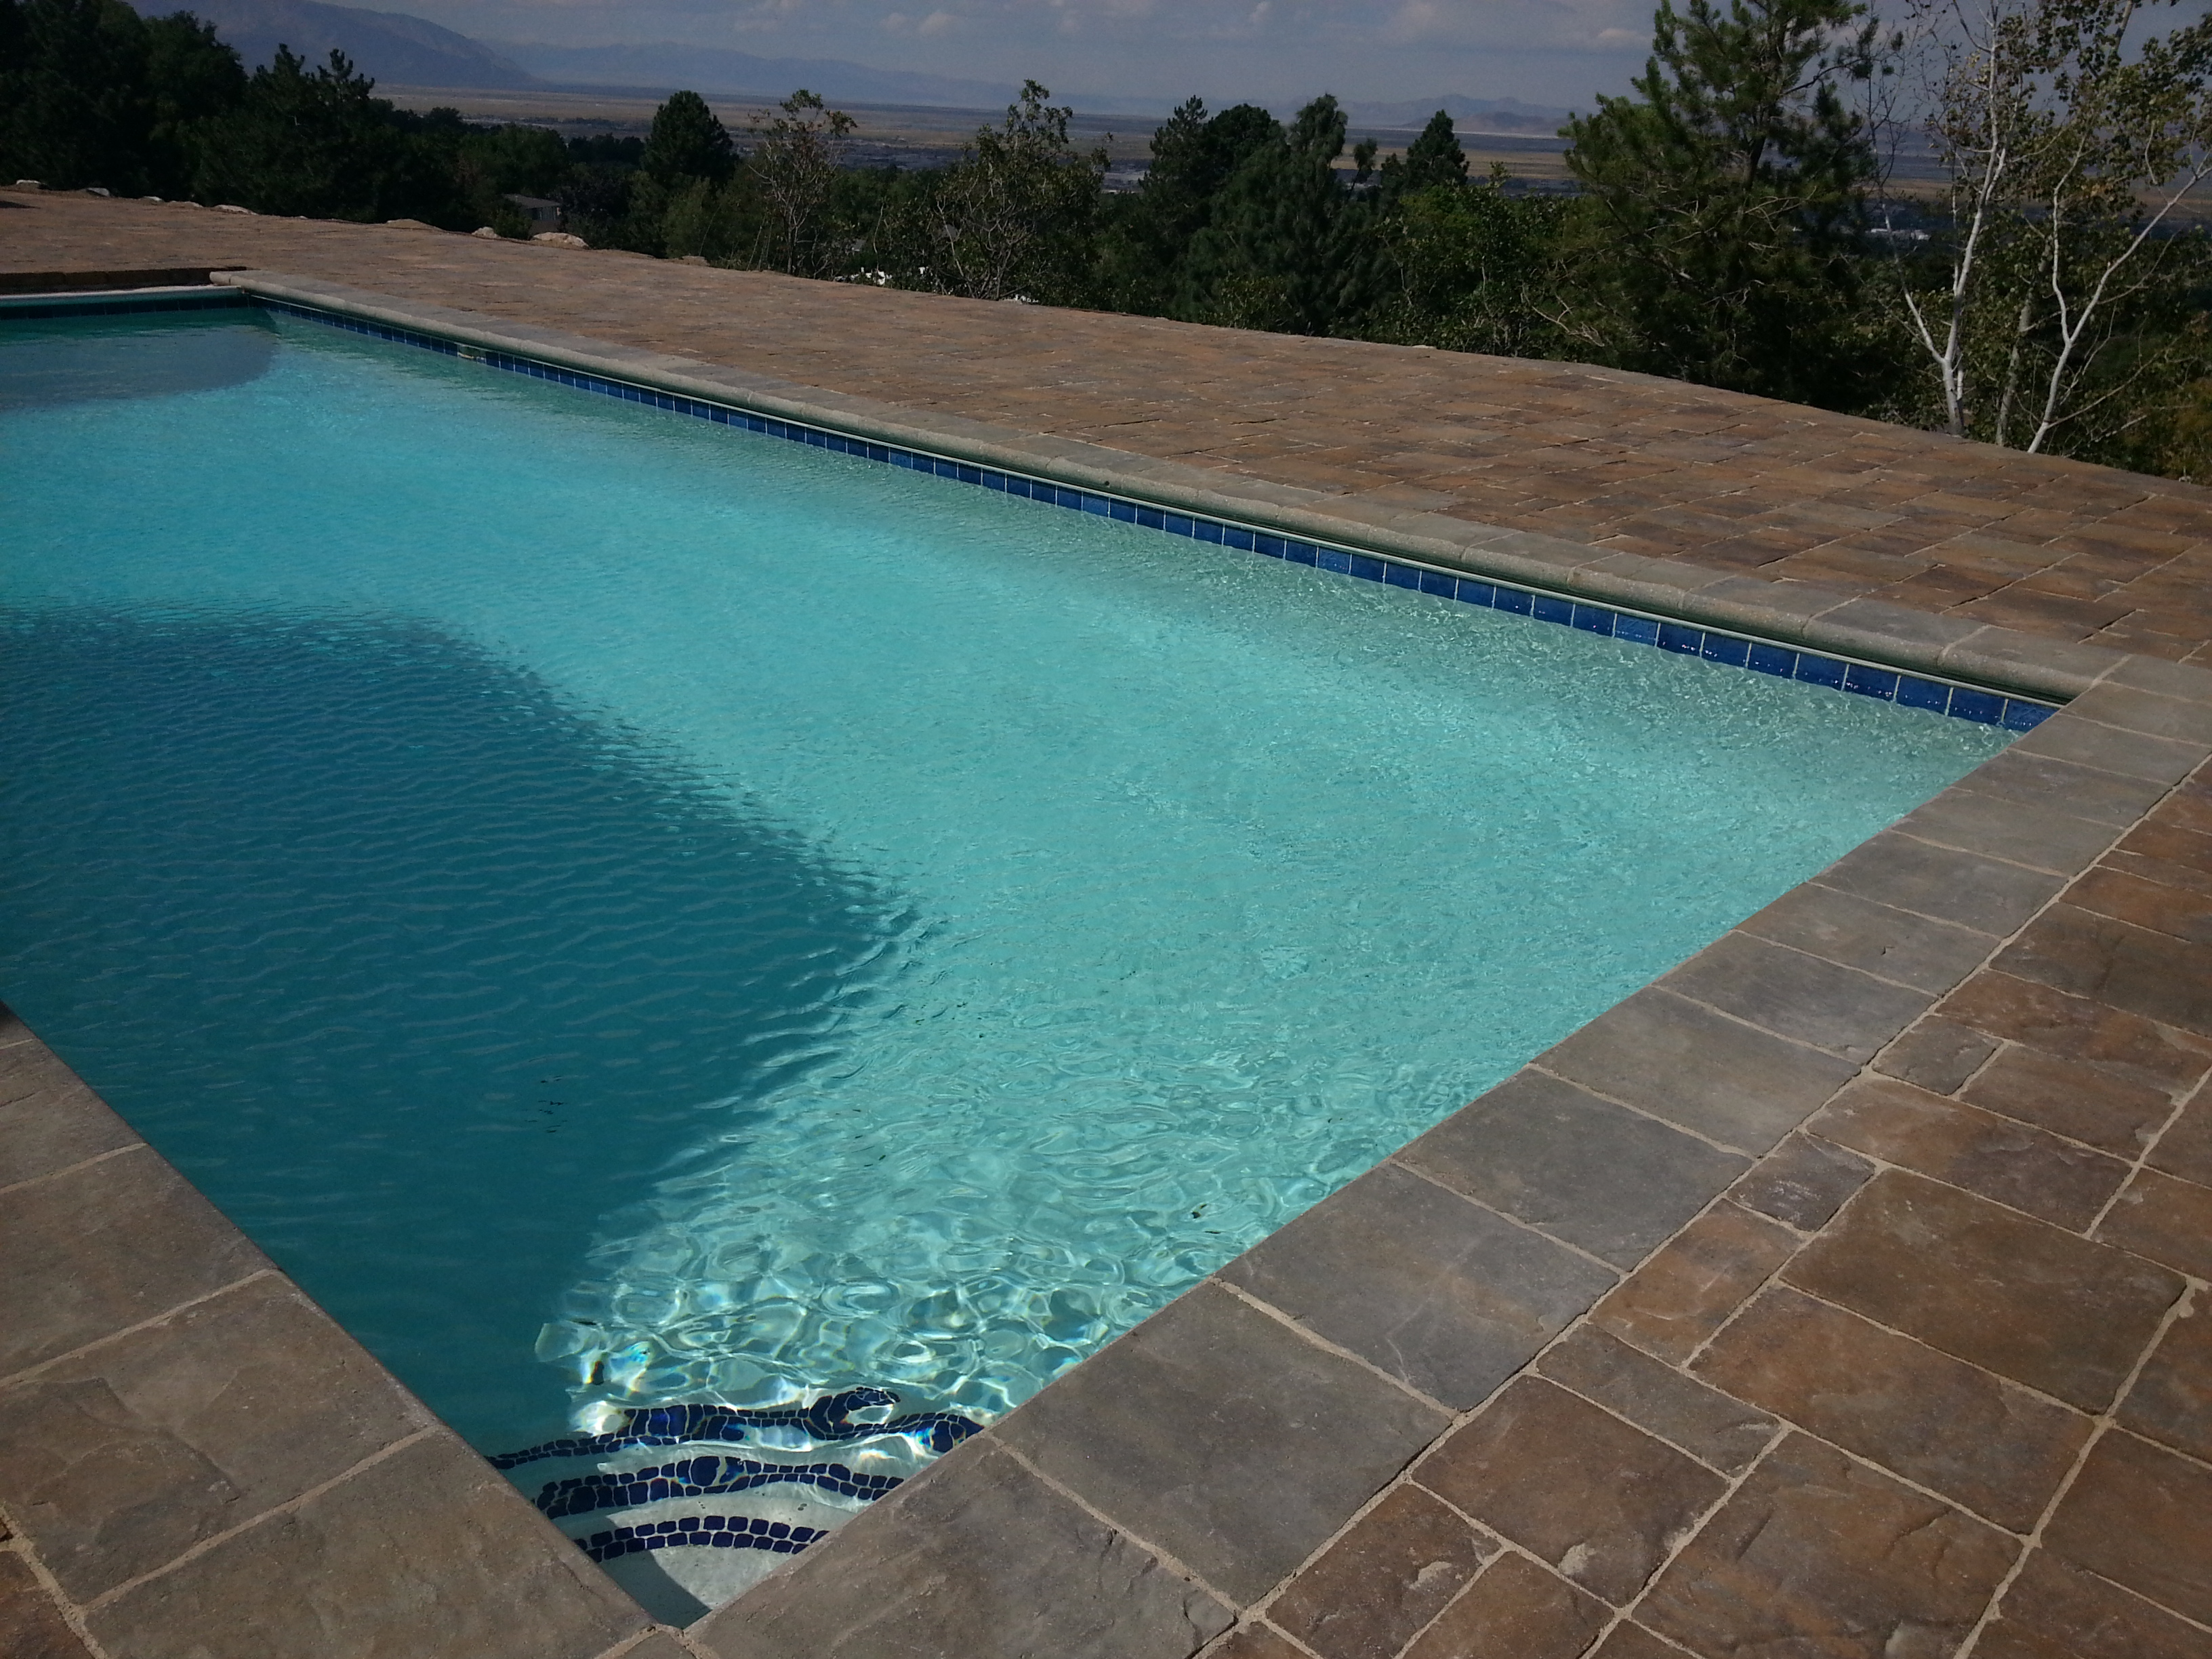 Pavers Around Swimming Pool Pavers Around Pools Paver Patios Paver Walkways Paver Walls